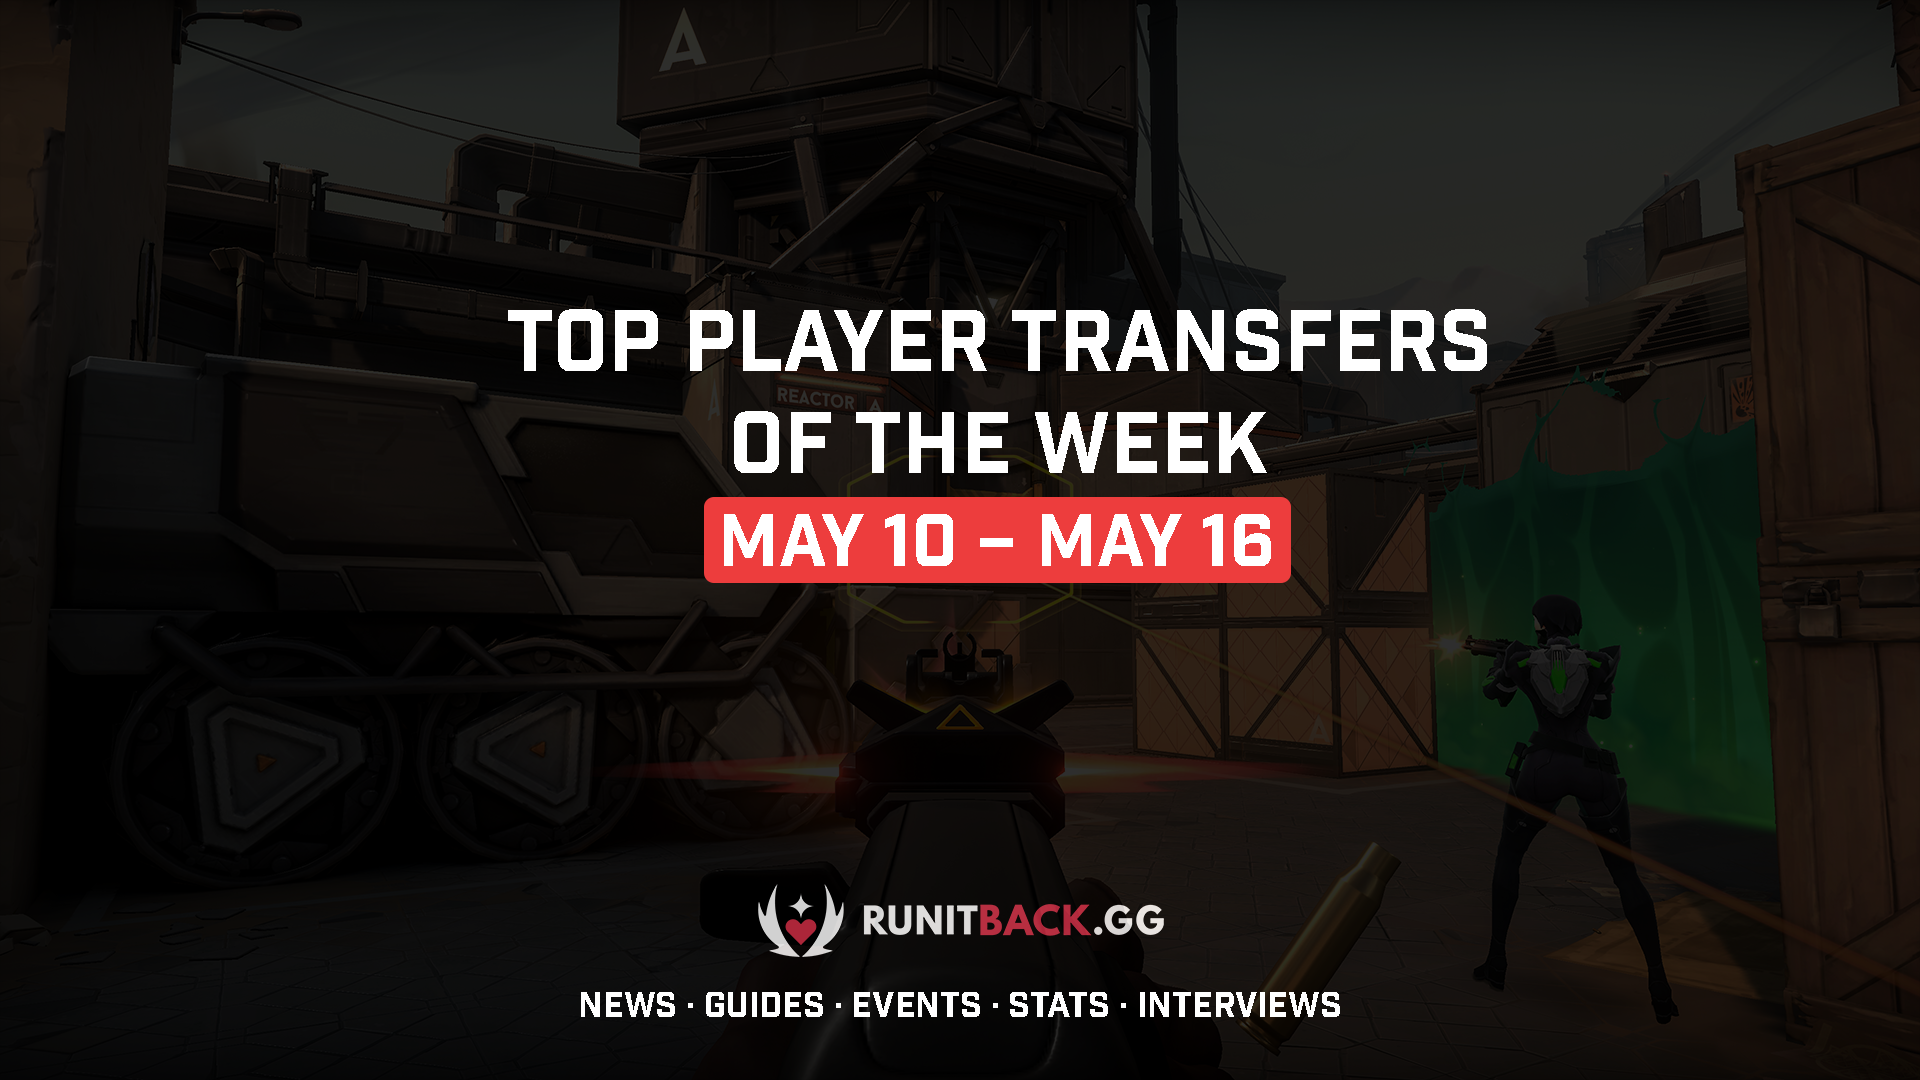 Top Player Transfers of the Week: May 10 – May 16